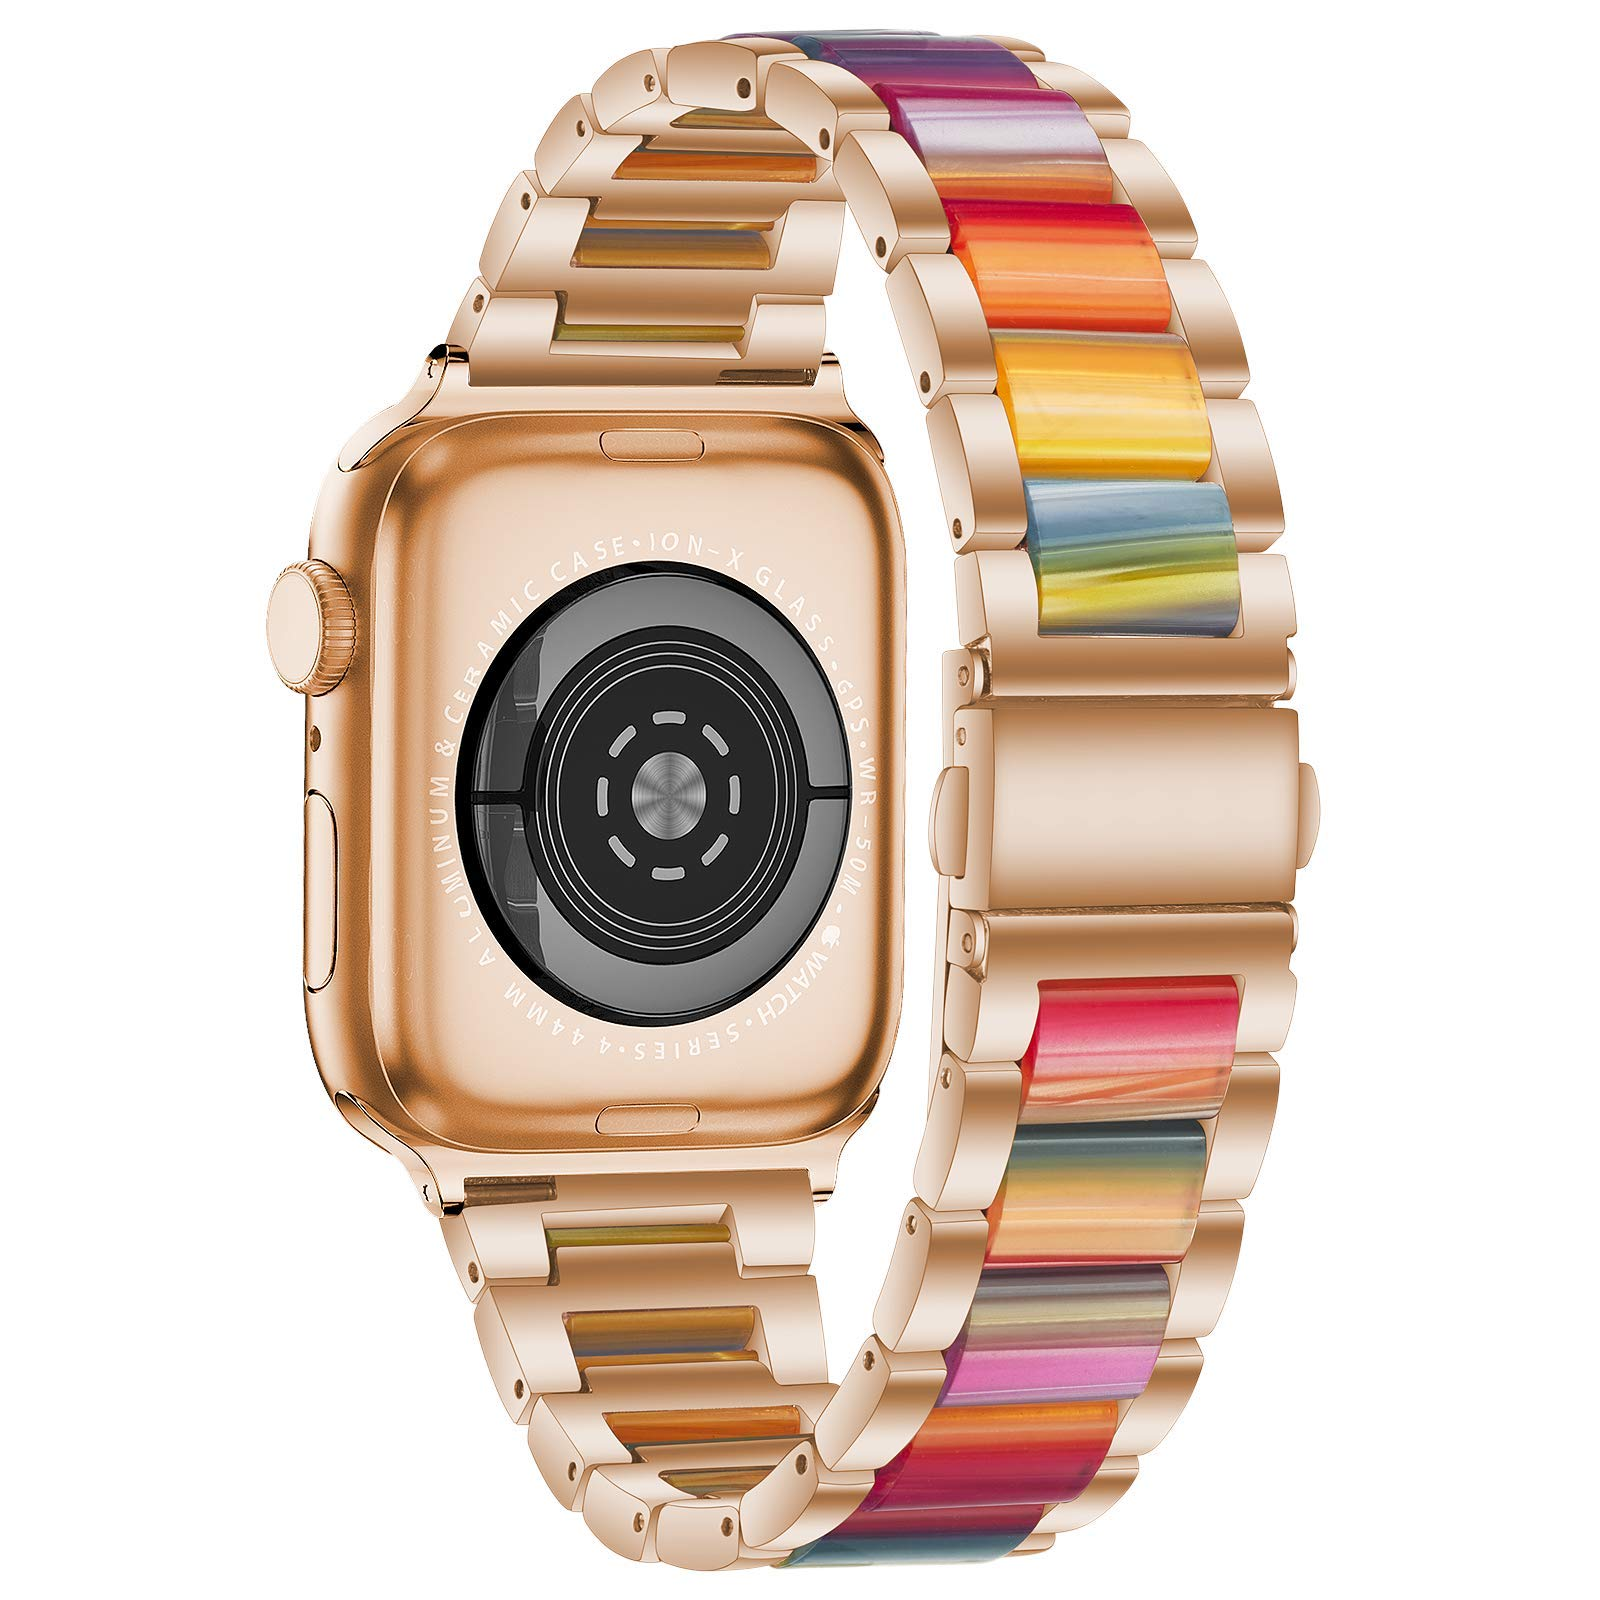 YEAPREE Stainless Steel Resin Bands Compatible with Apple Watch Band 44mm 42mm 40mm 38mm , Metal Bling Chains Strap Bracelet Wristband for iWatch Series 6/5/4/3/2/1/SE